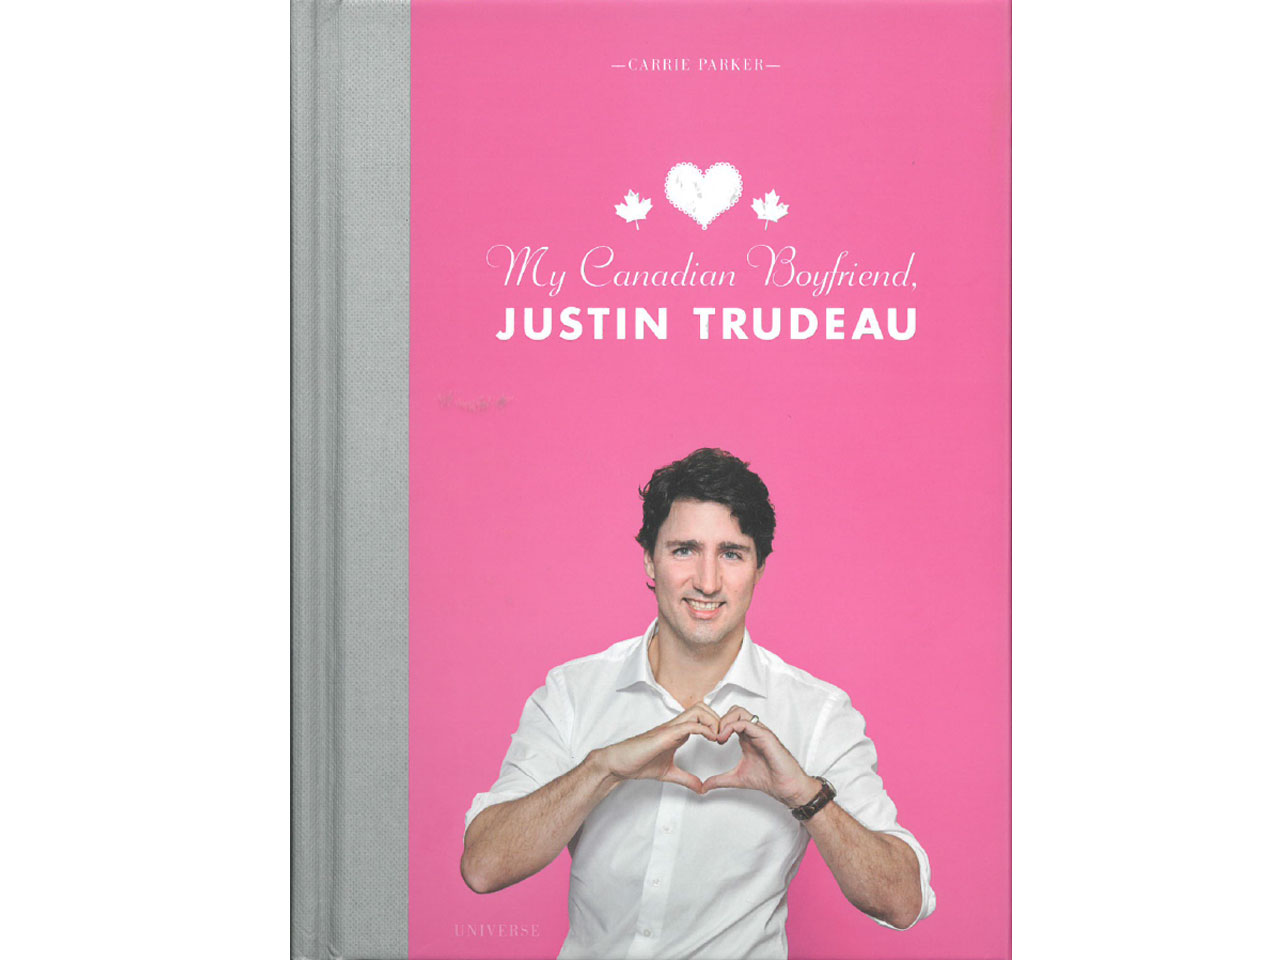 my canadian boyfriend justin trudeau book cover